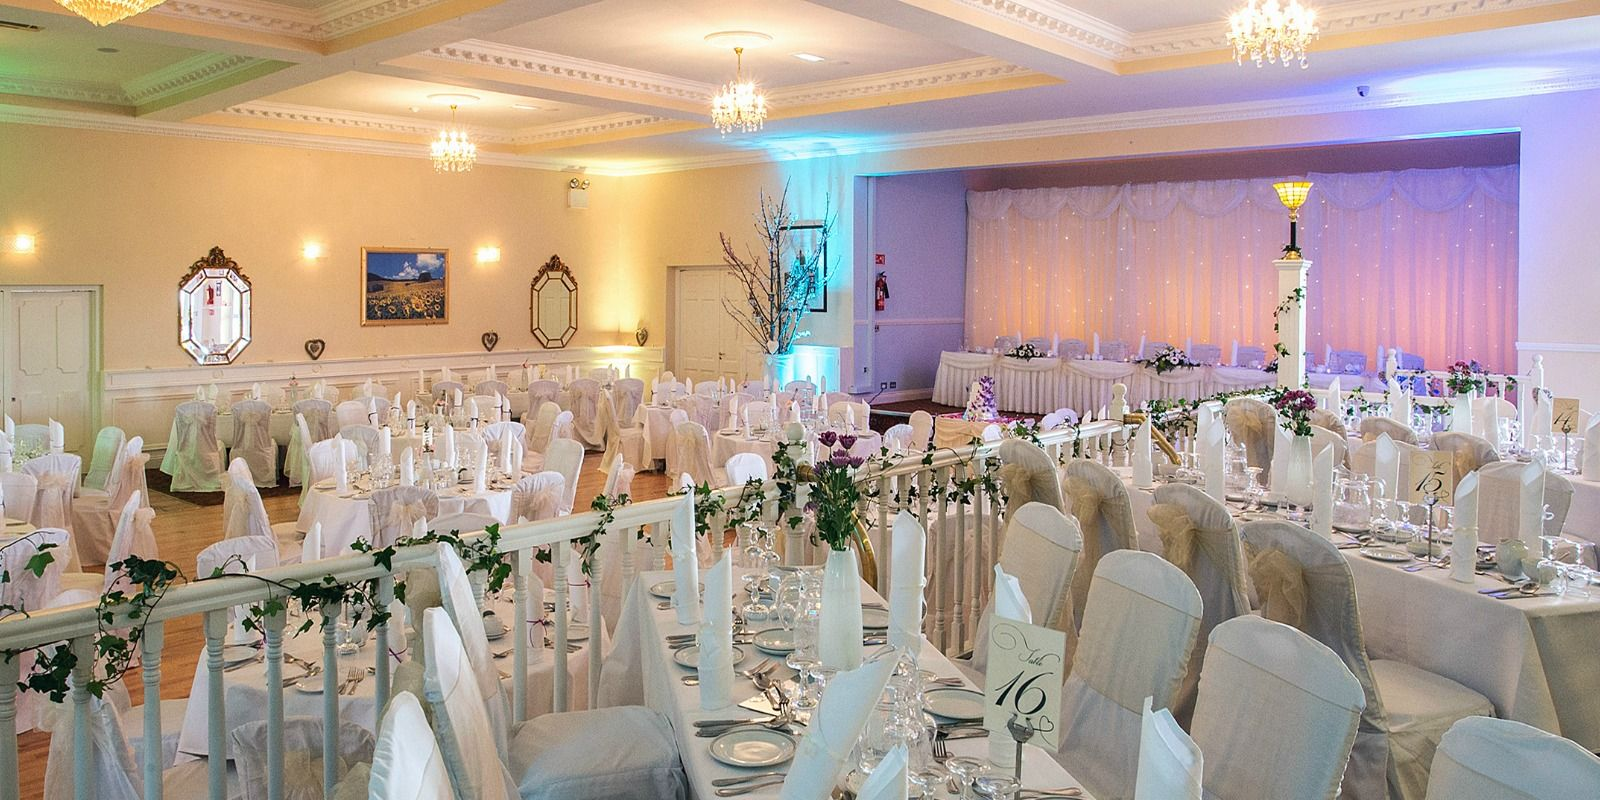 Weddings and Celebrations at the Rhu Glenn Hotel